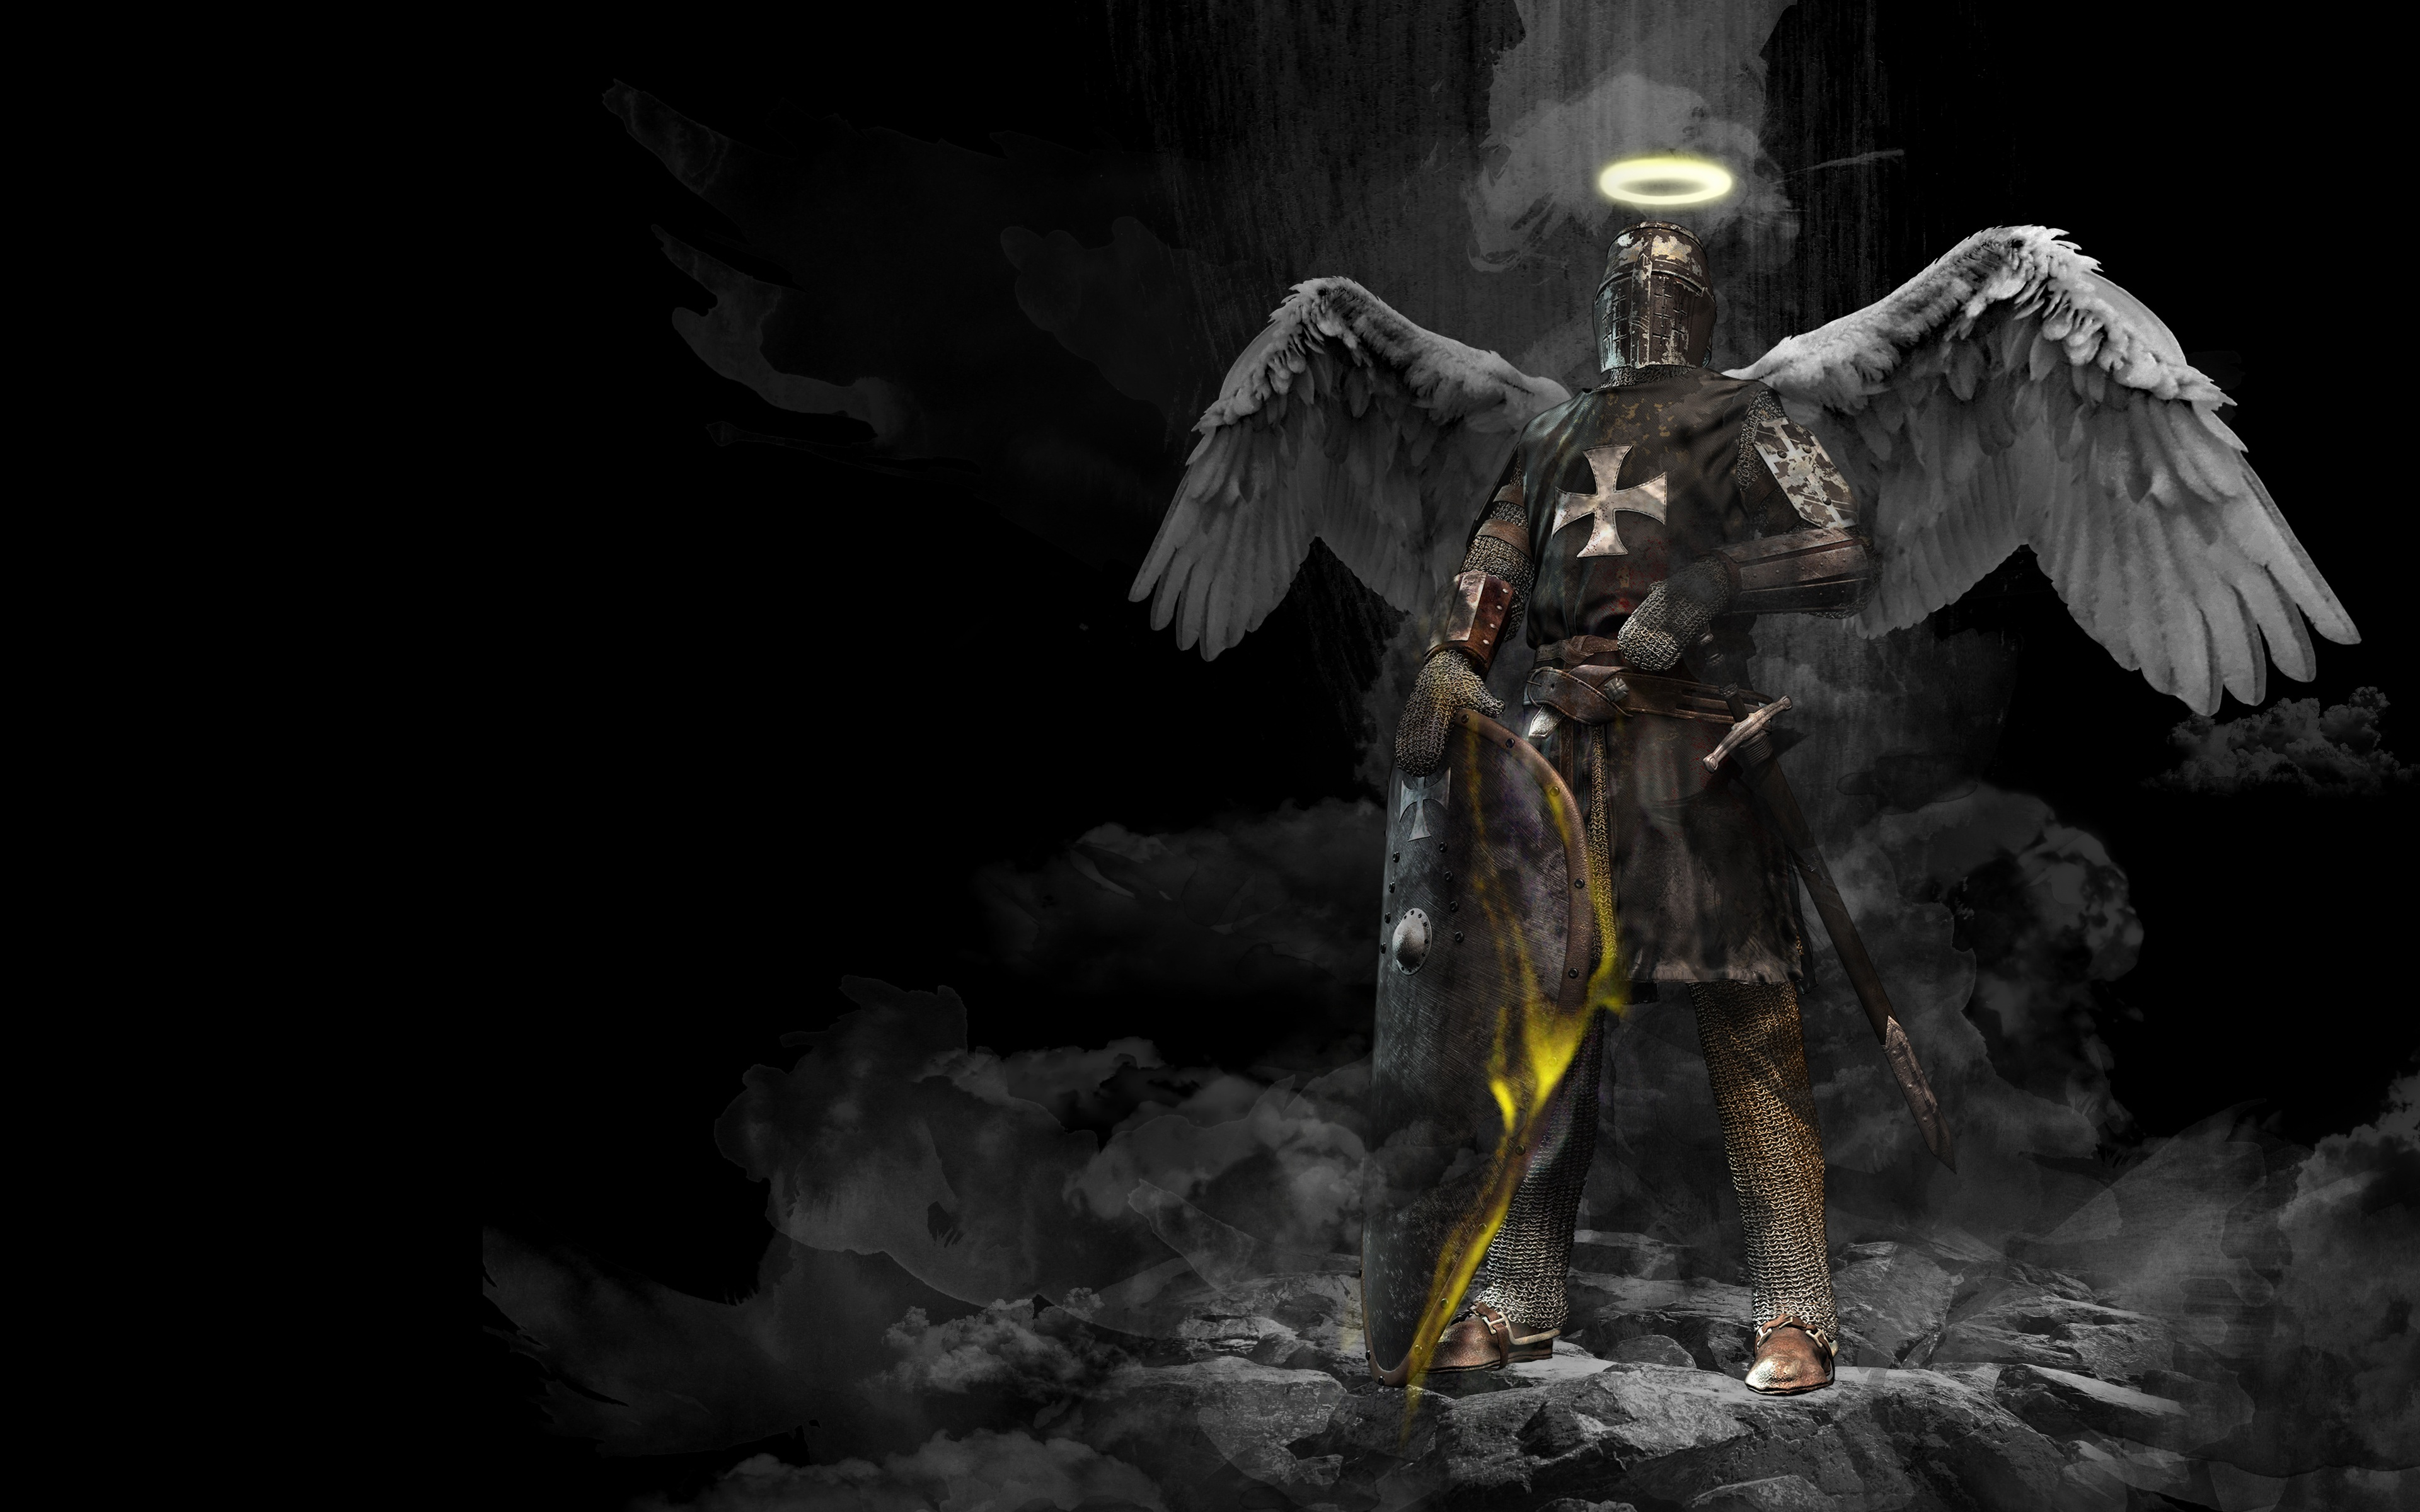 Angel Fantasy Knight Hd Artist 4k Wallpapers Images Backgrounds Photos And Pictures